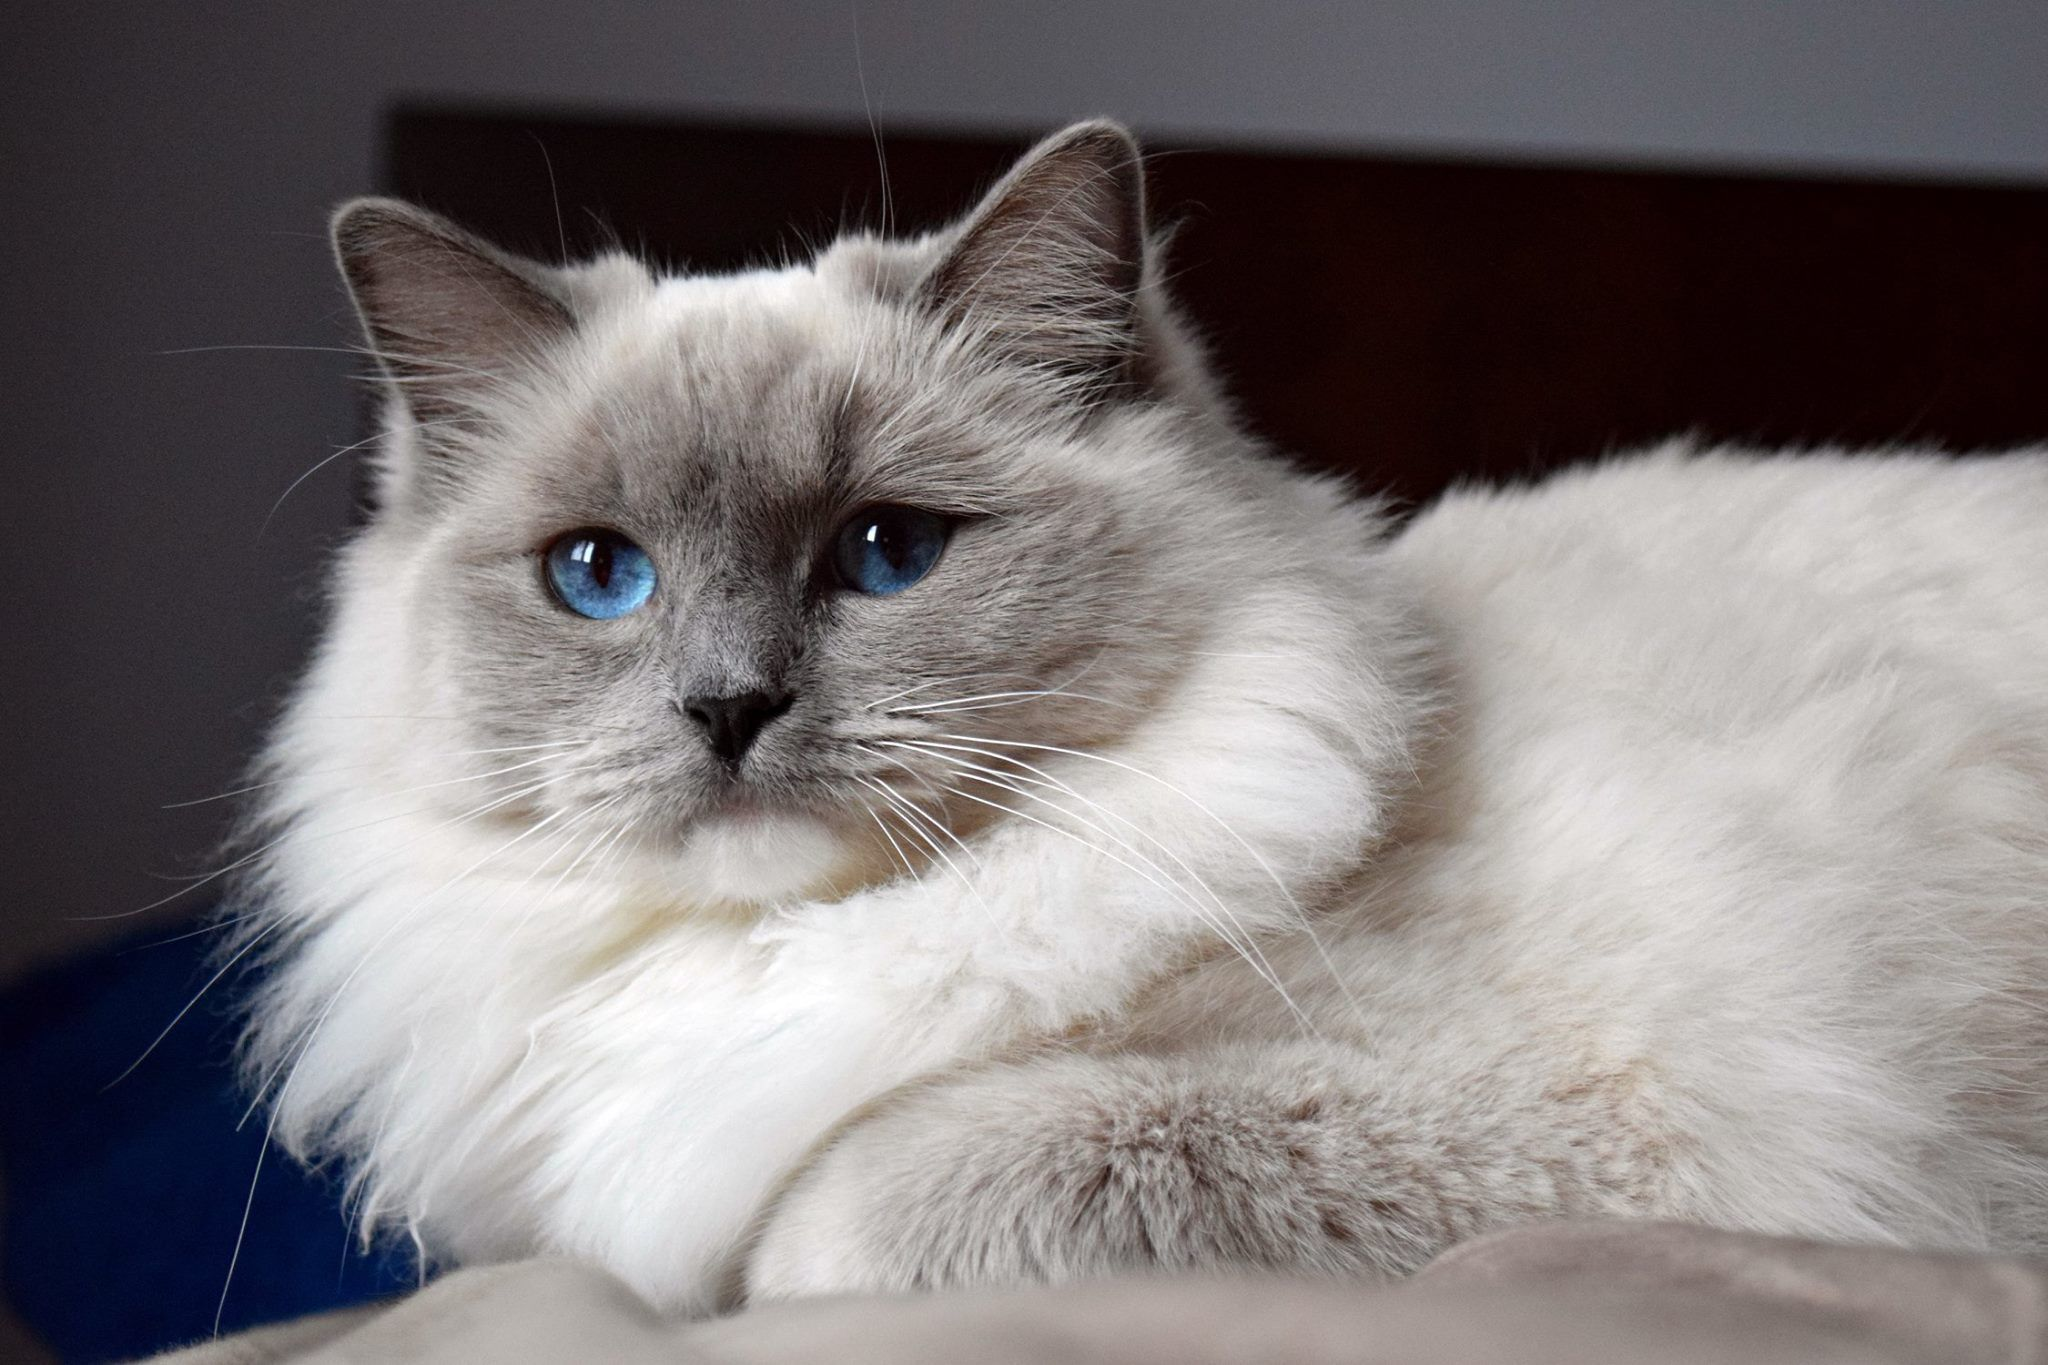 No Pictures Of You Yet Leo But I Know You Are Gorgeous Ragdoll Cat Ragdoll Kitten Cat Facts